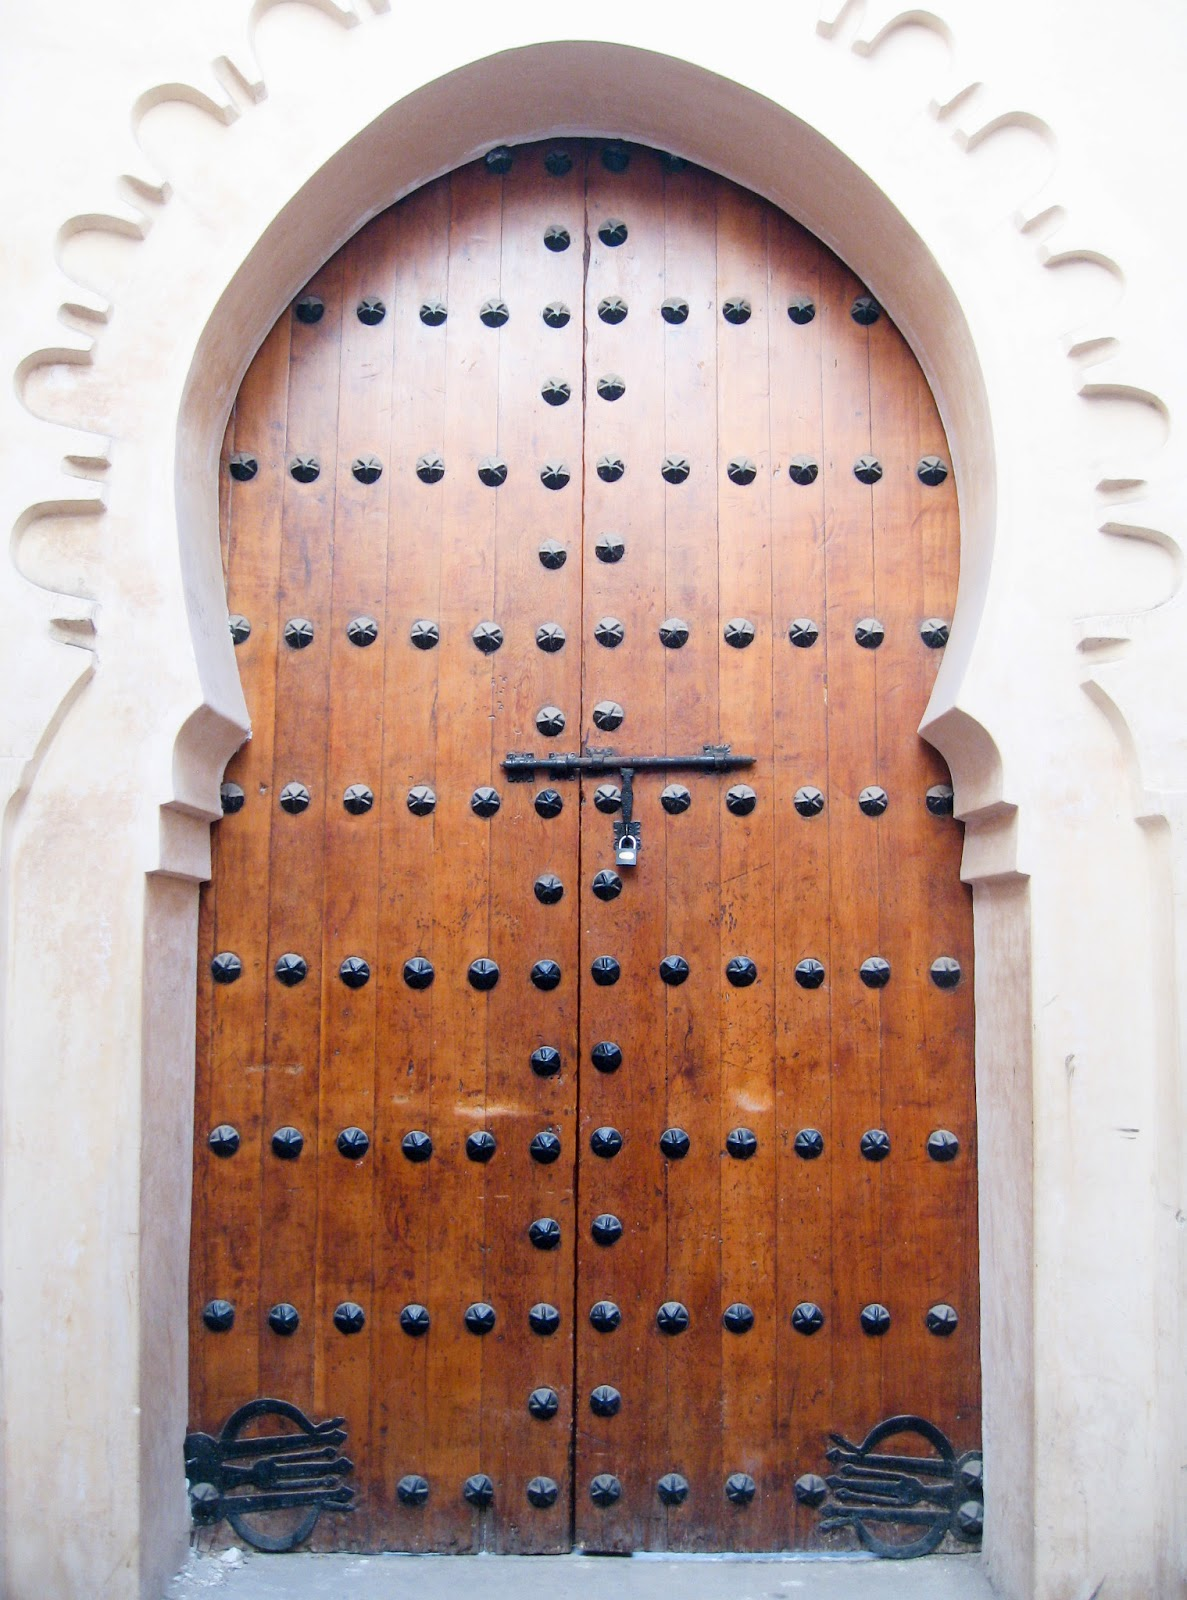 Marrakech top tourist attractions: Beautiful doorways of Marrakech in neutral colors